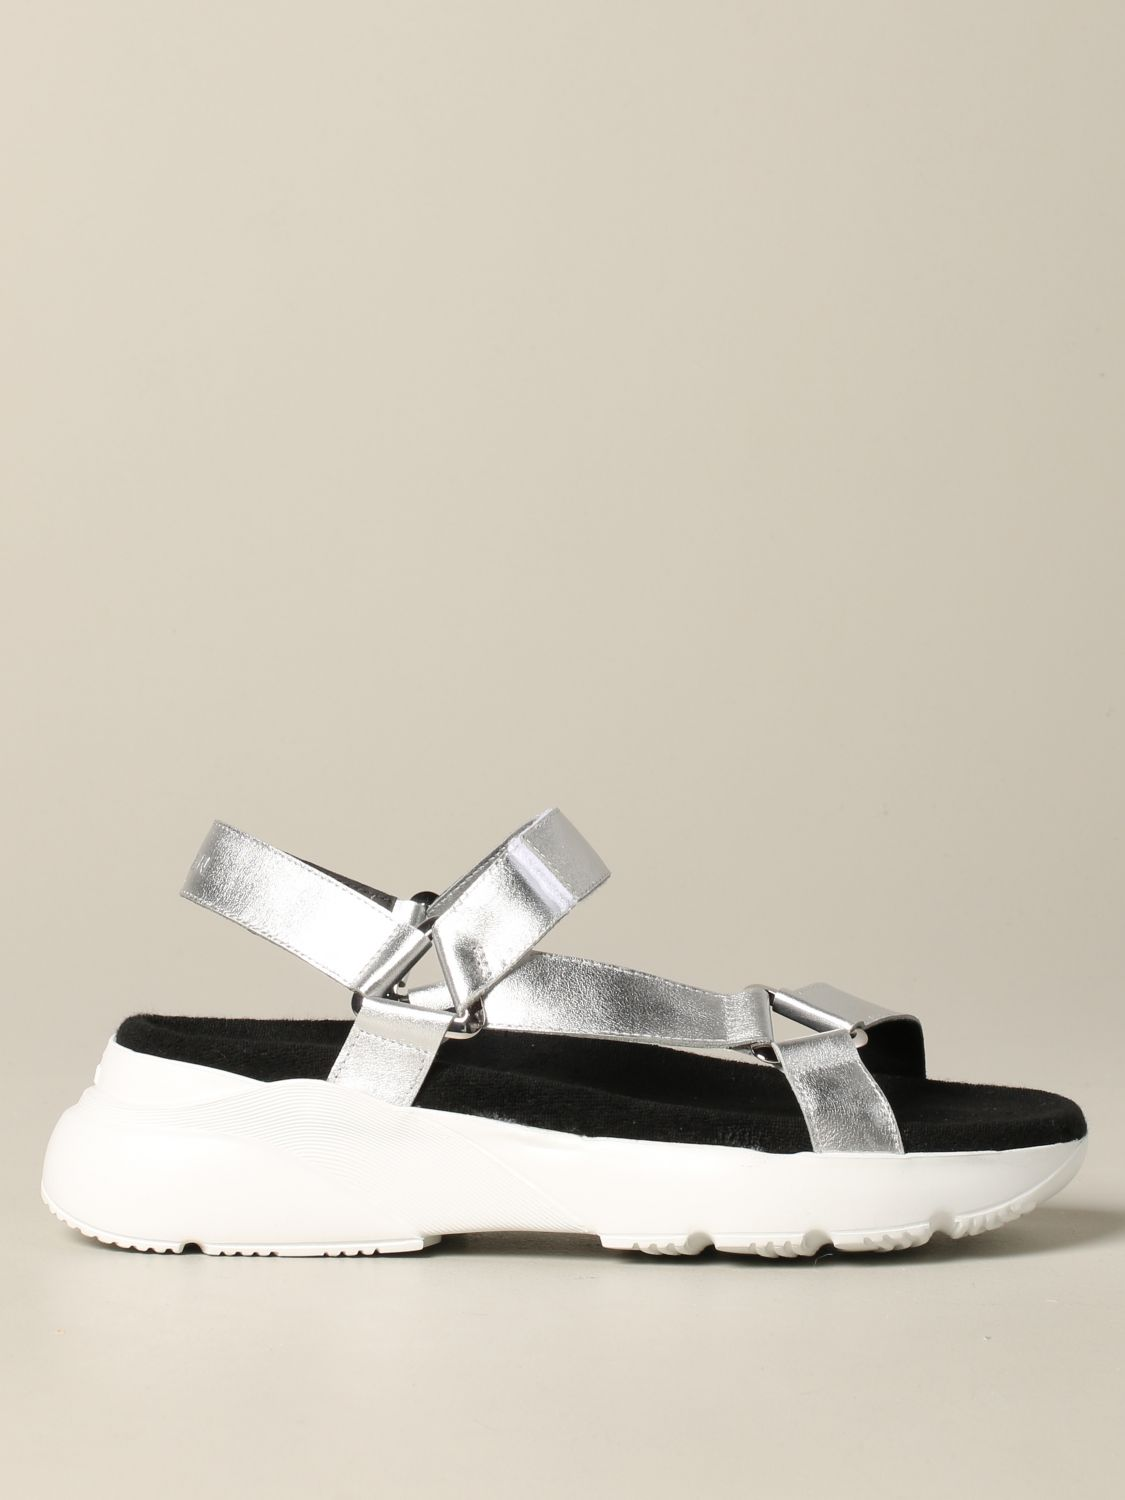 Hogan sandal in laminated leather with active one sole